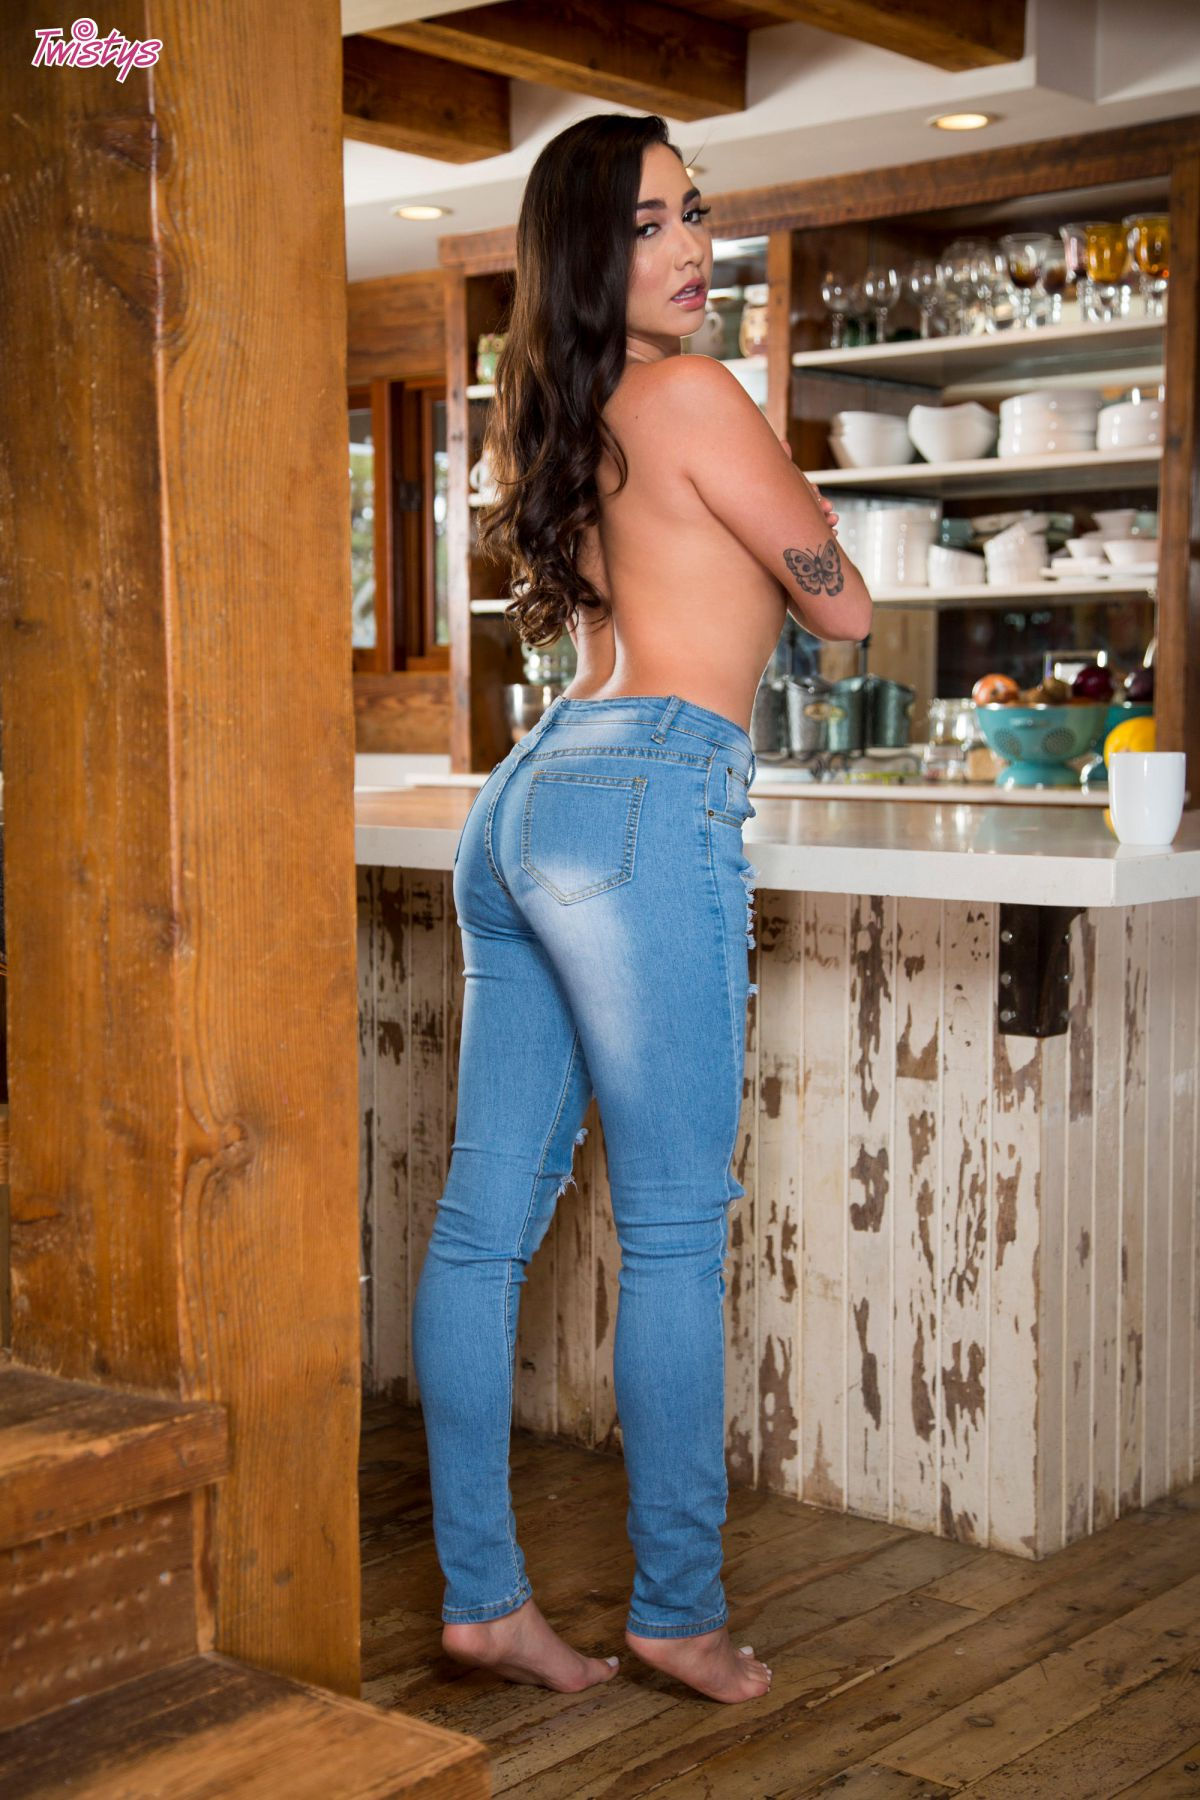 karlee grey voluptuous babe ass in jeans 8 greatnass.com_